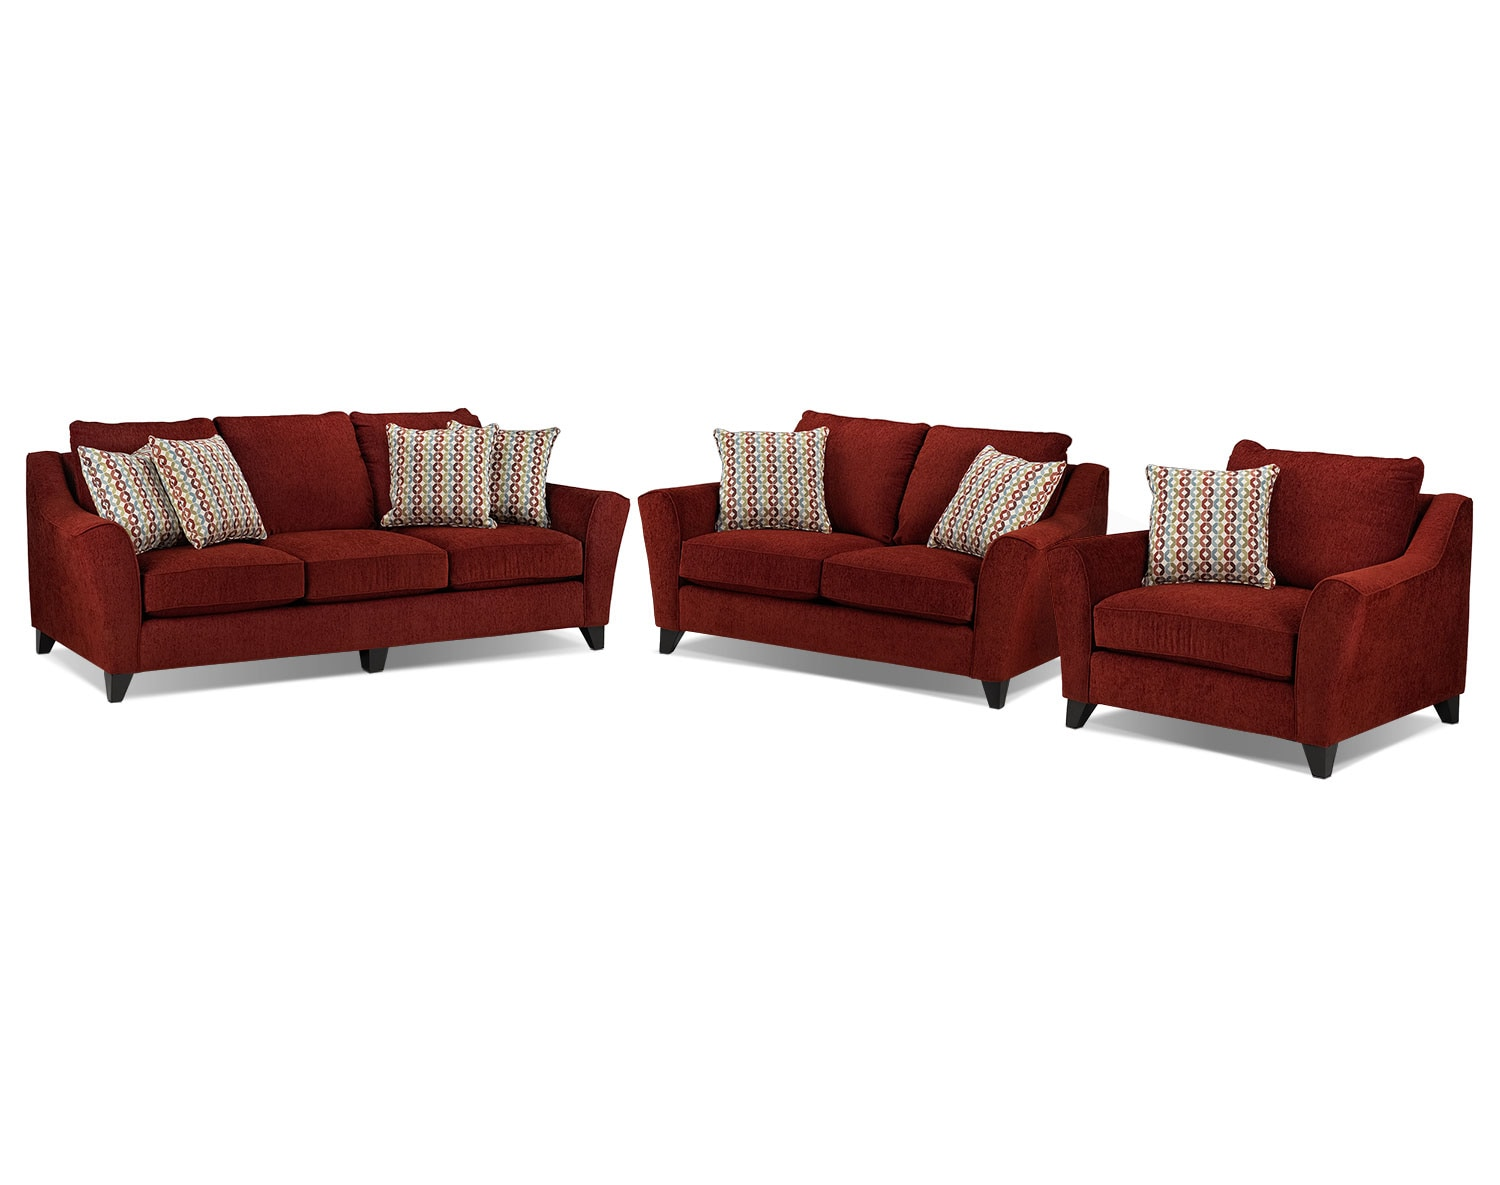 Alijon Sofa, Loveseat and Chair and a Half Set - Red